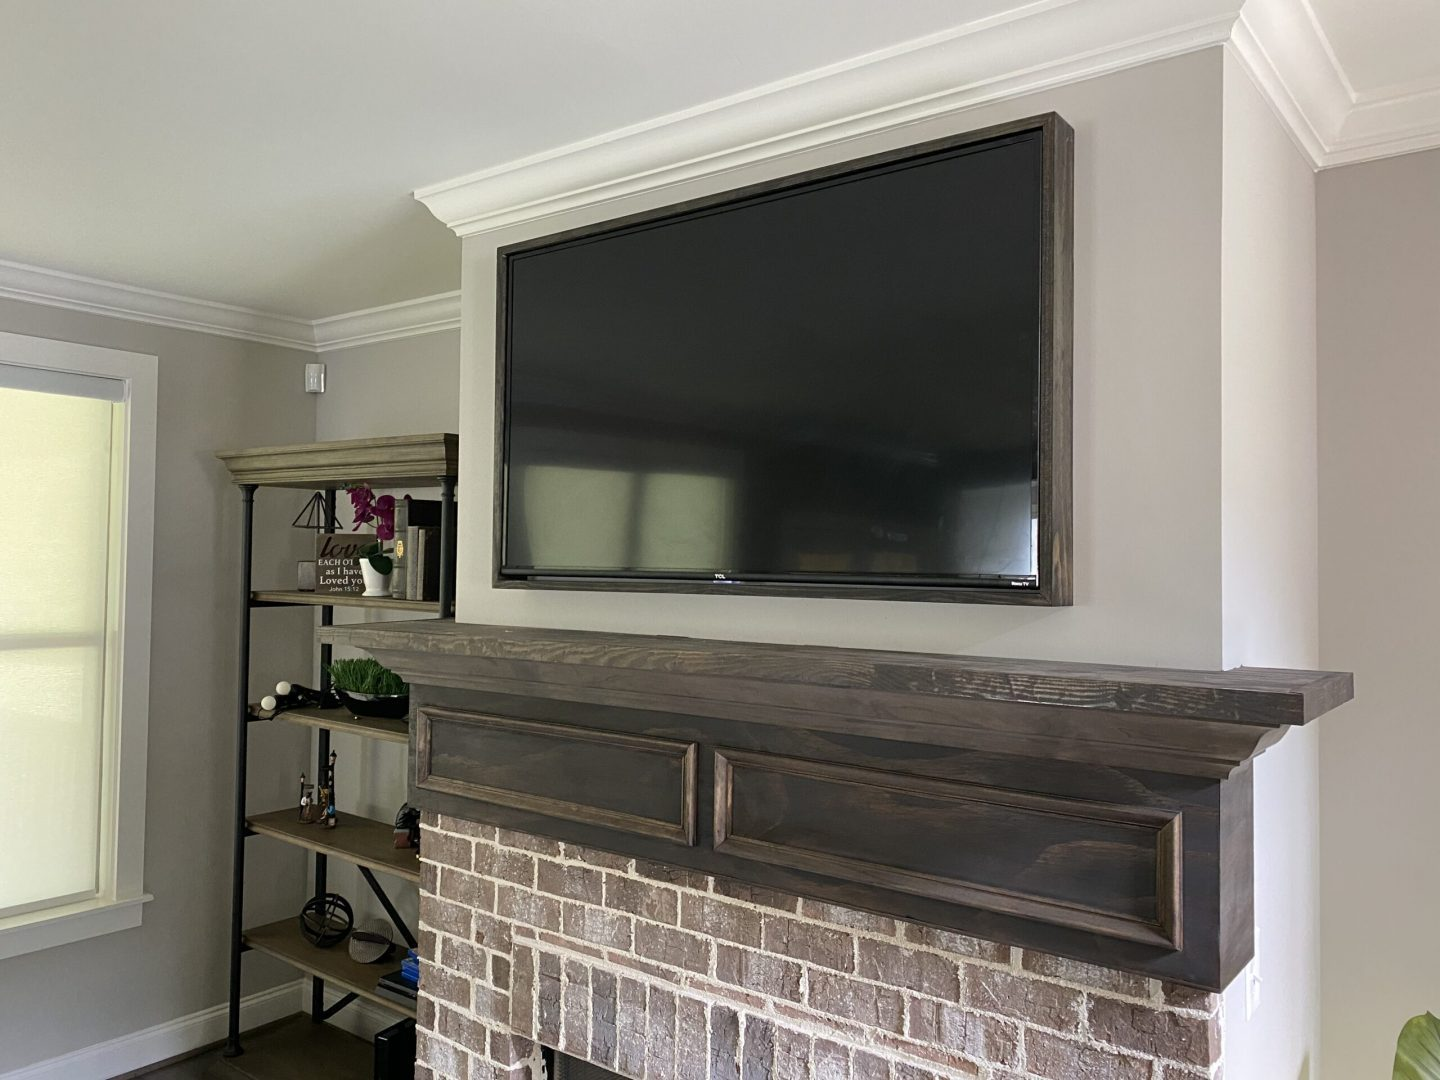 TV installation and mounted above fireplace